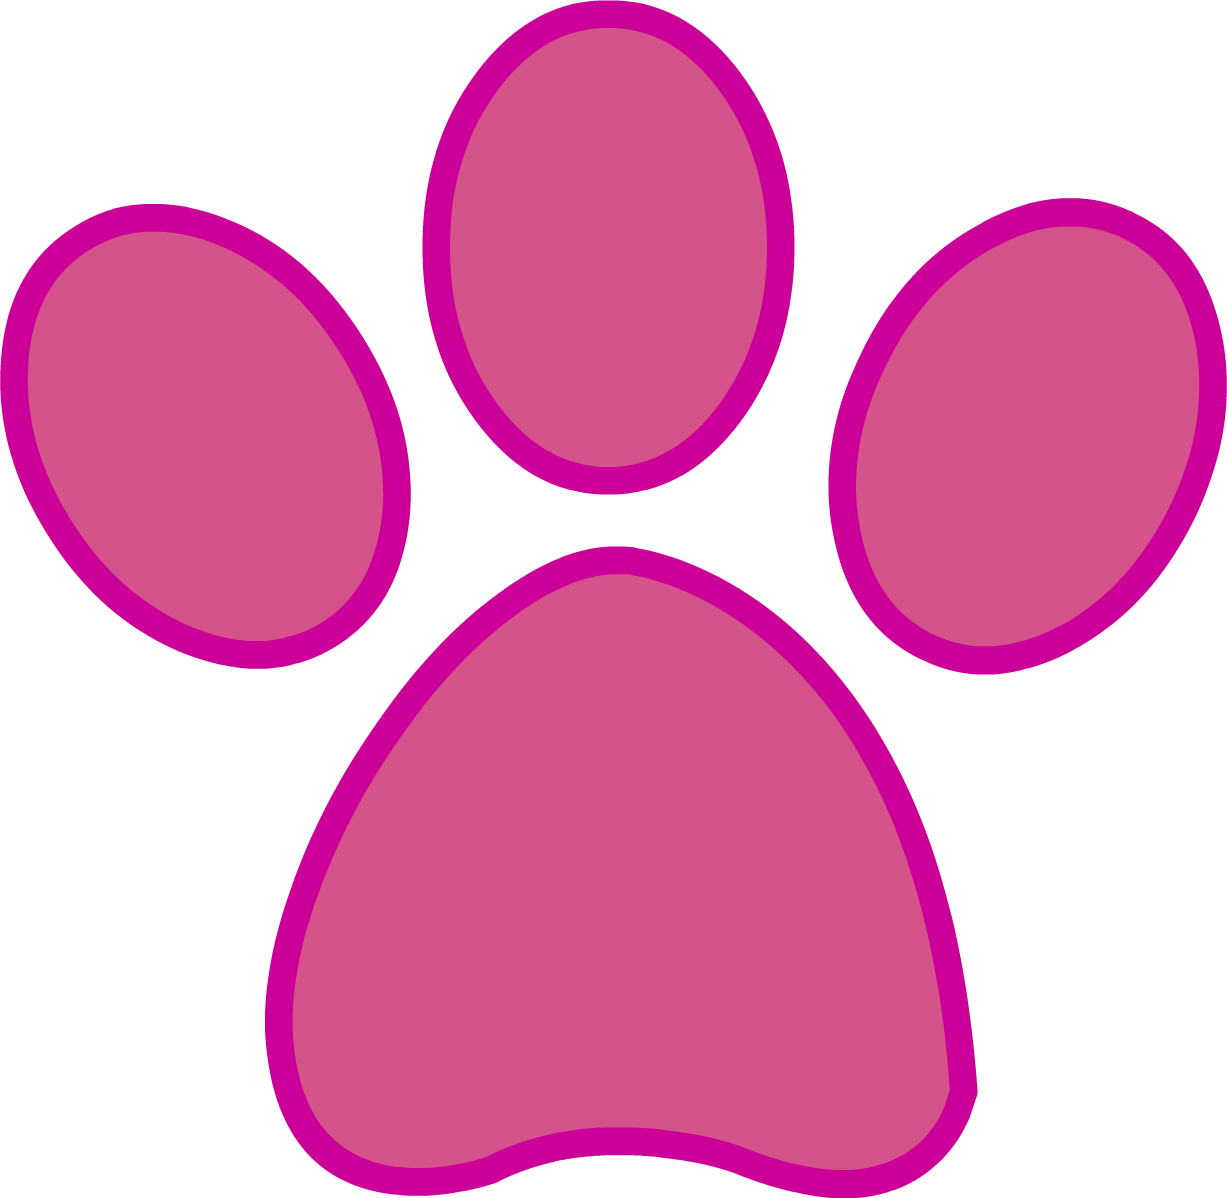 Rabbit Paw Print Png : It's high quality and easy to use.